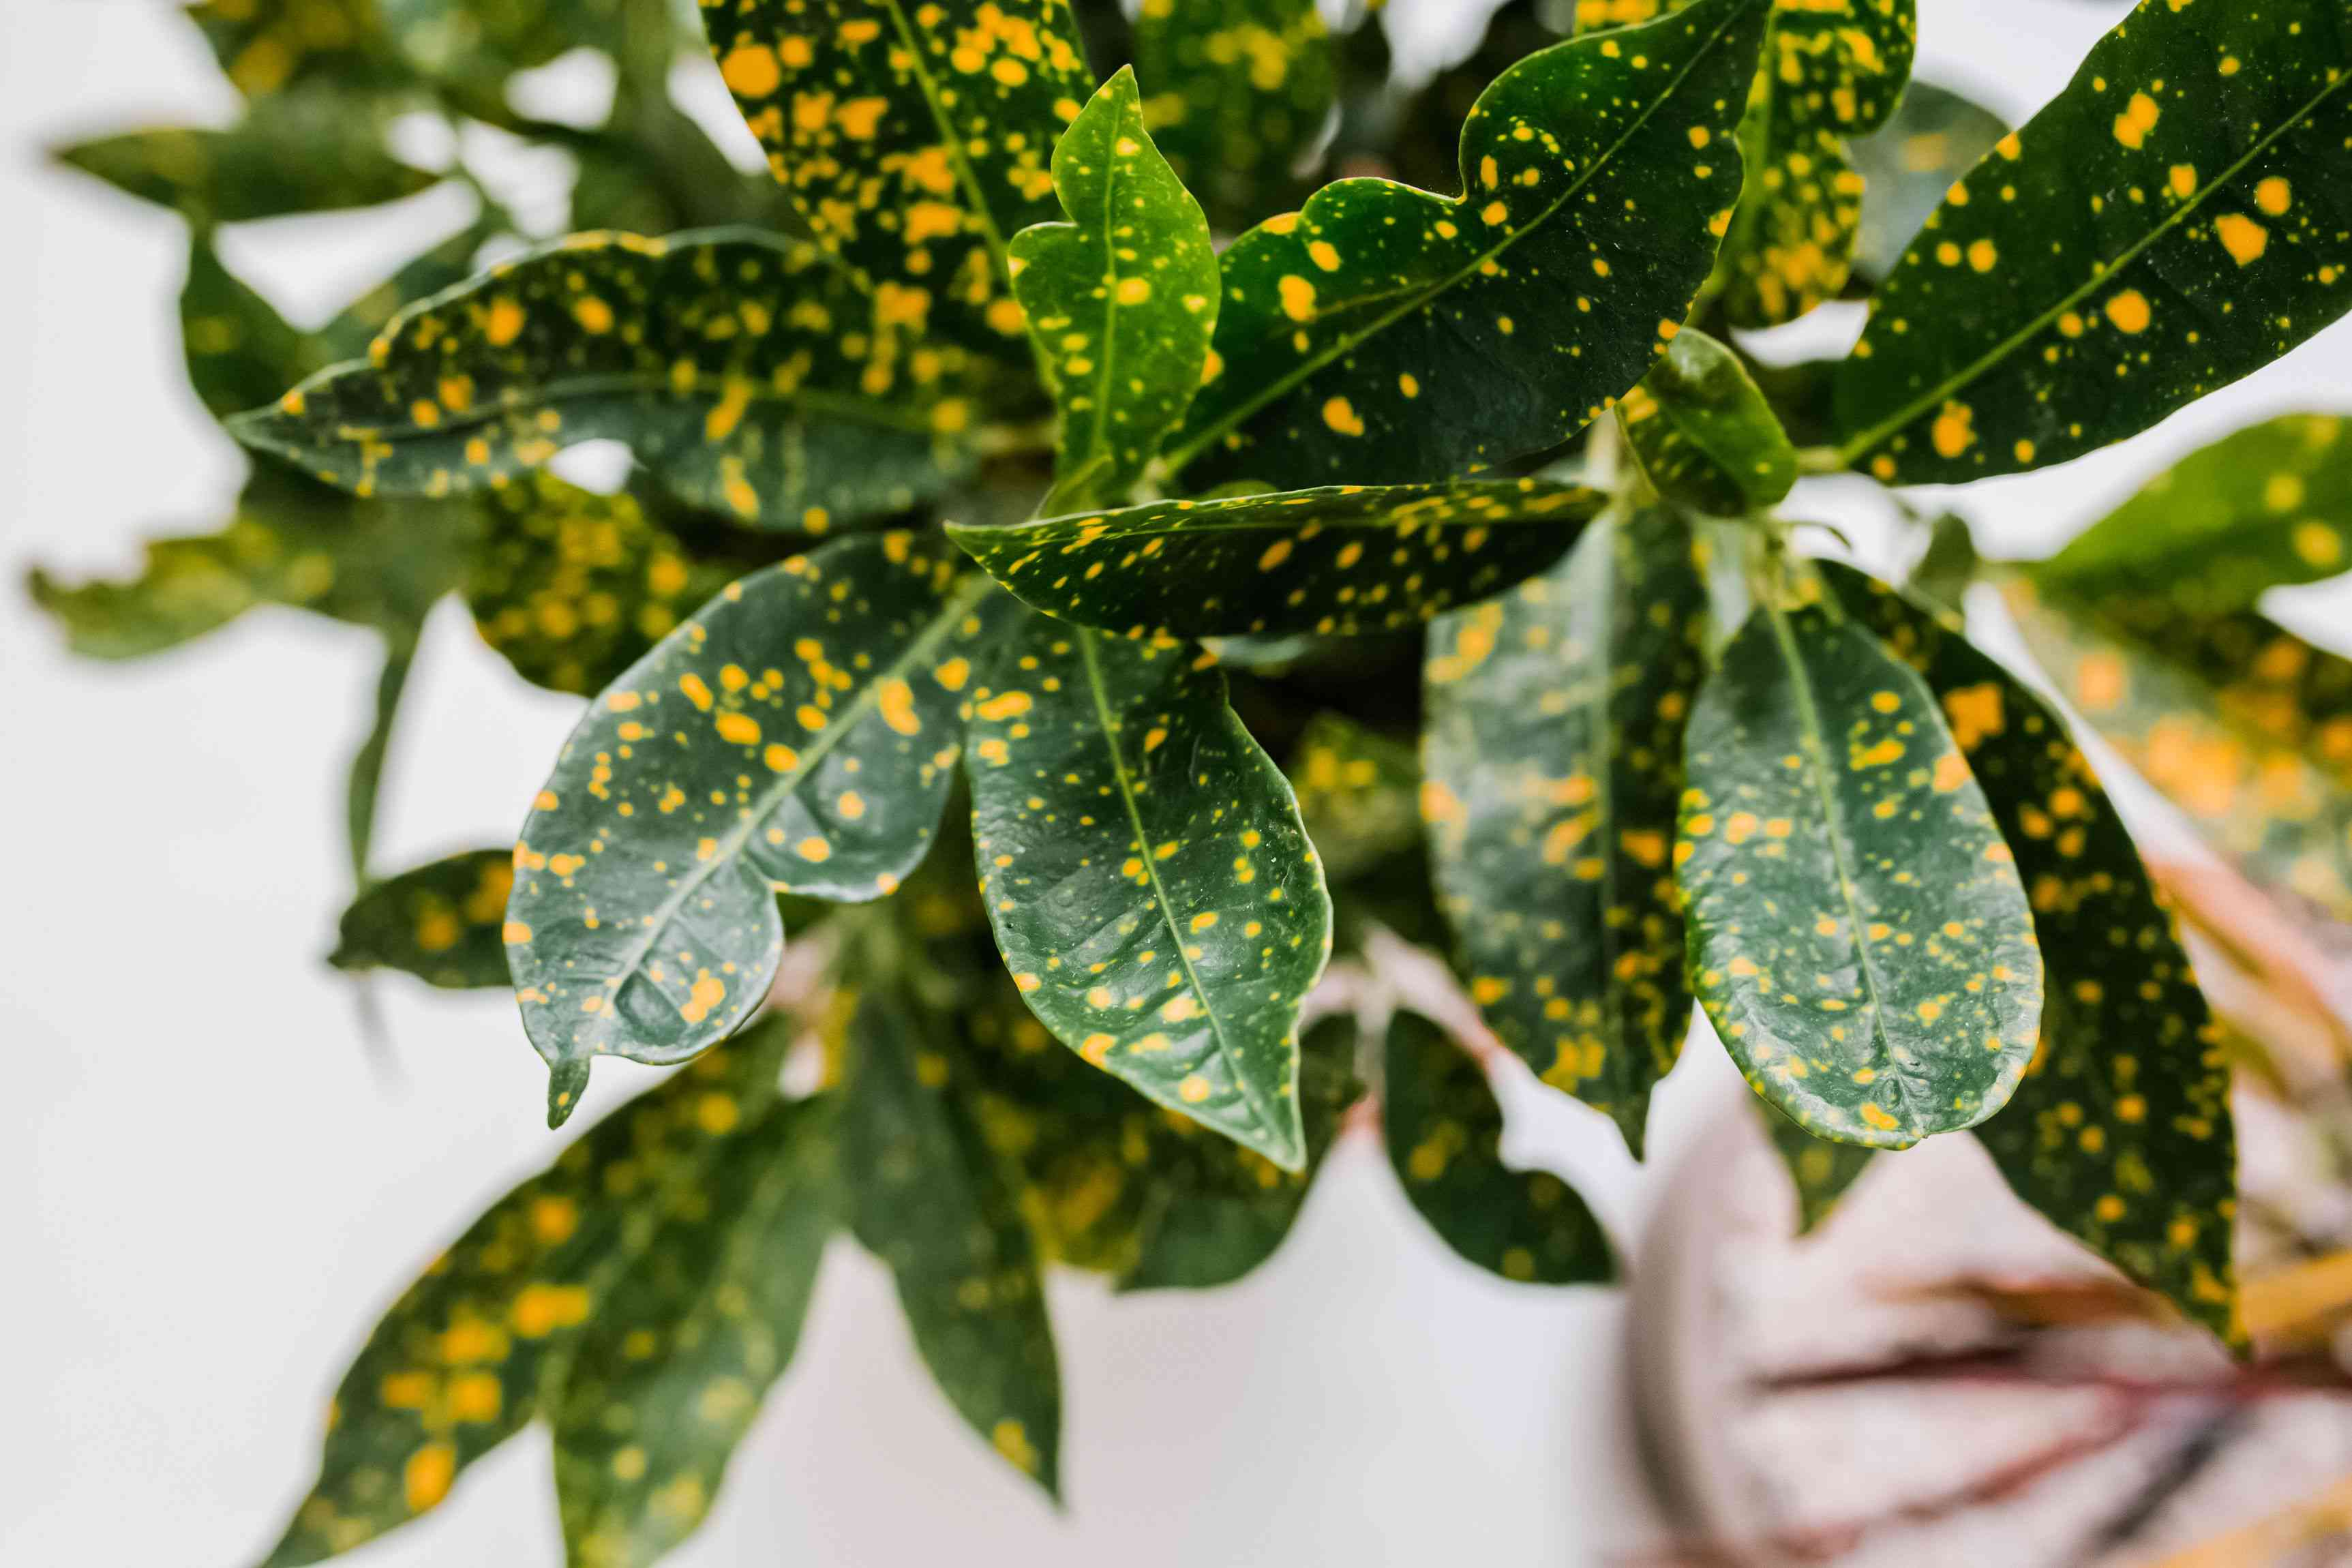 Croton plant with dark green leaves and yellow spots speckled throughout closeup